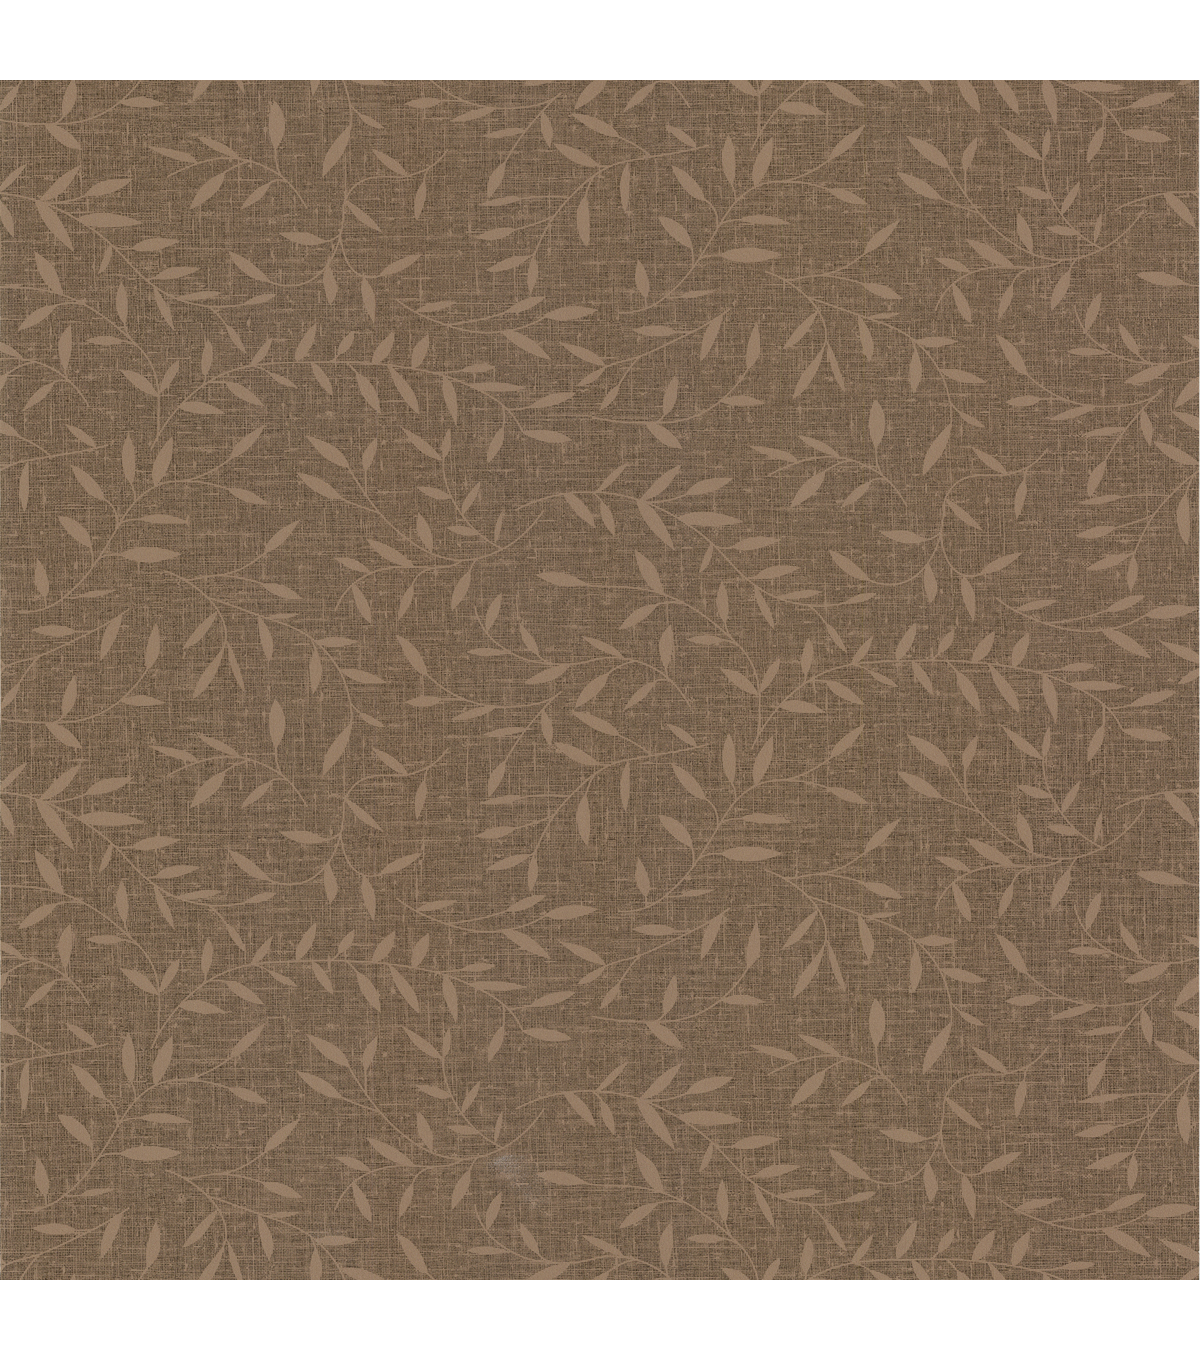 Ascella Brown Leaf Texture Wallpaper Sample